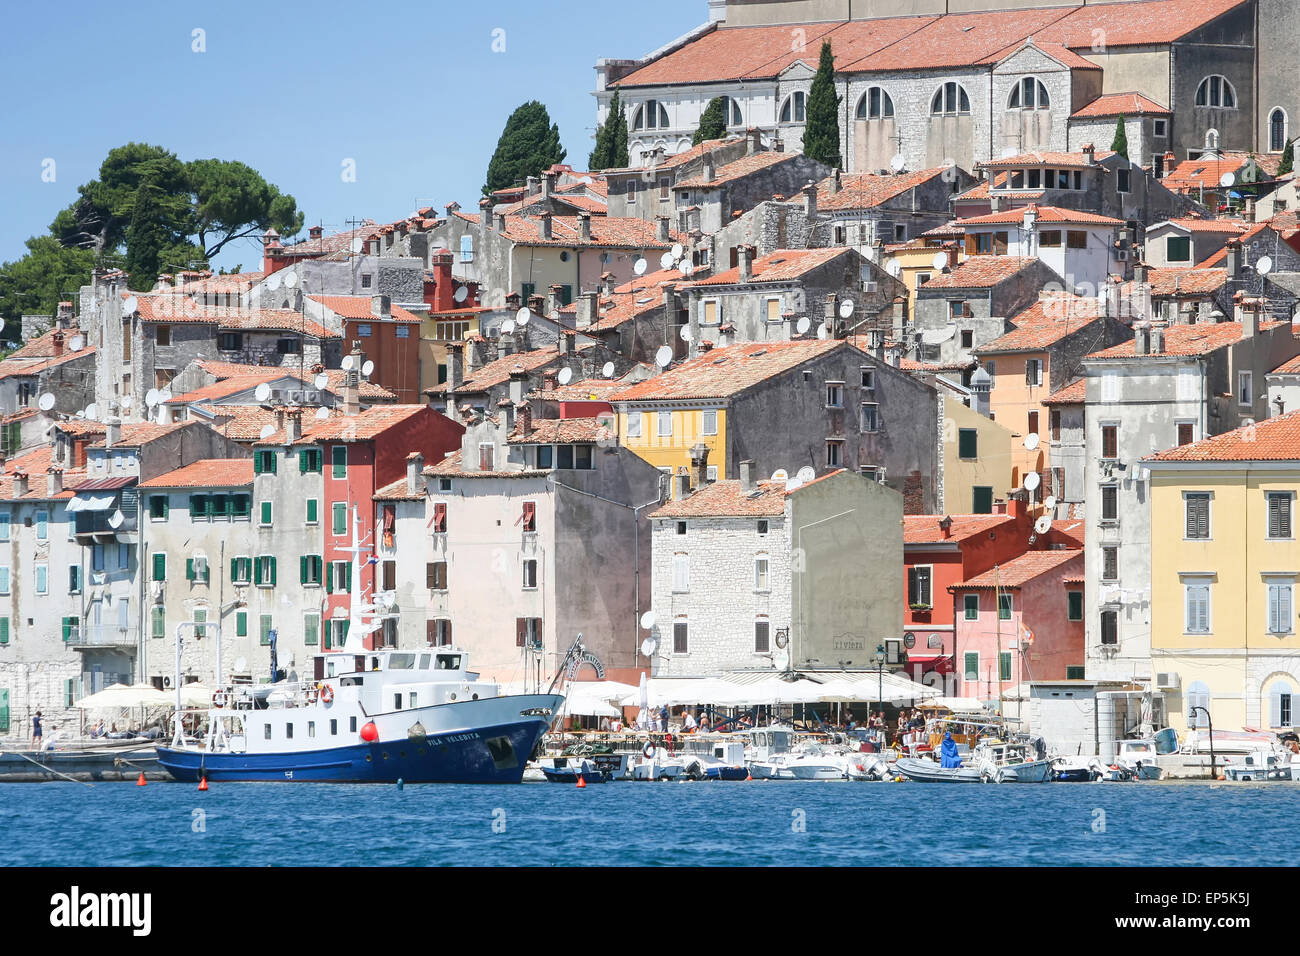 Old stone residential buildings of the old city core with boats anchored next to the seafront in Rovinj, Croatia. - Stock Image